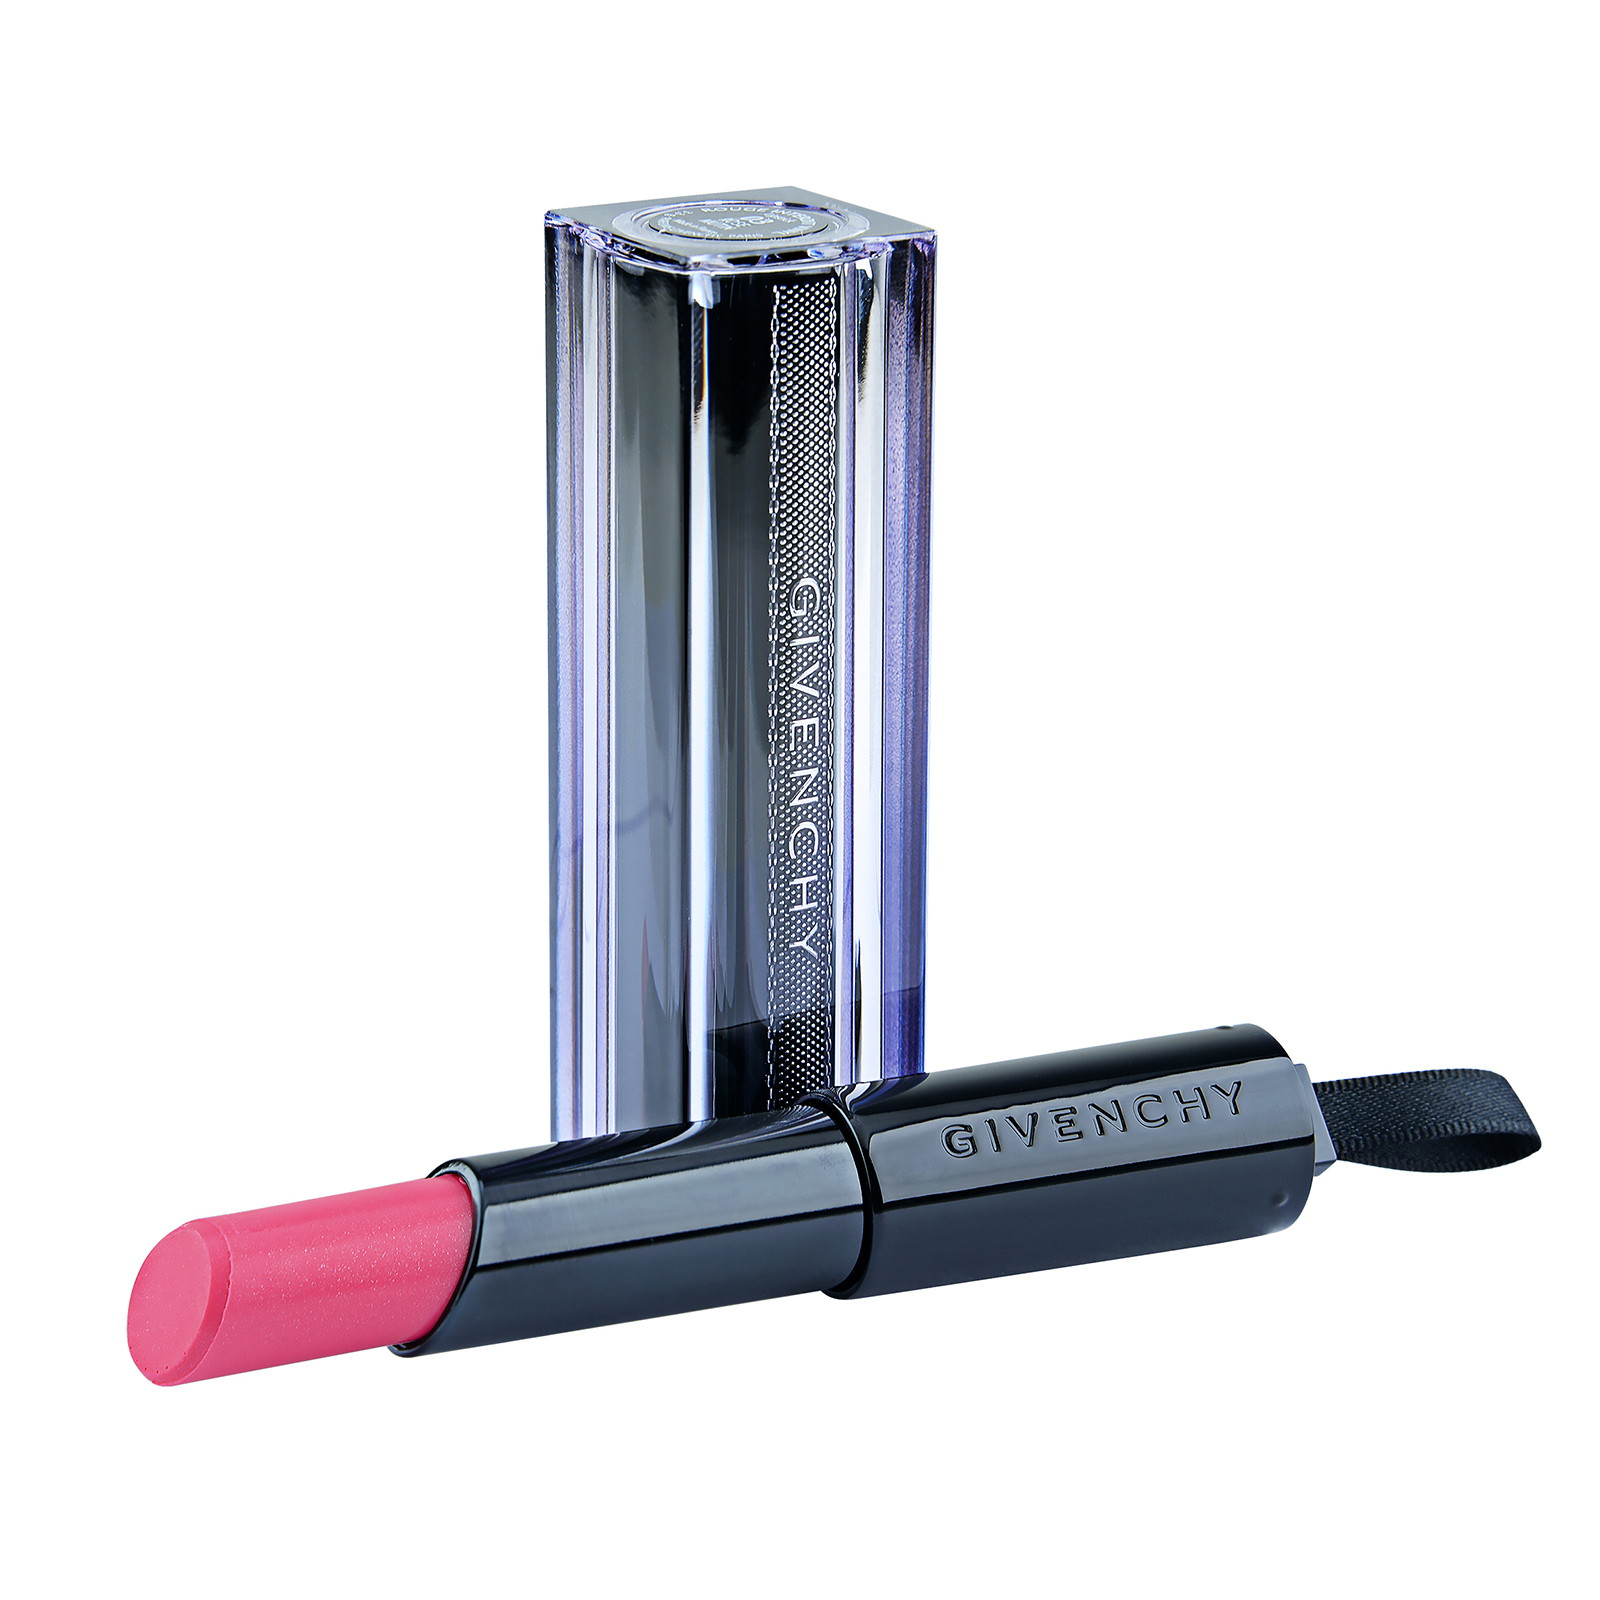 Givenchy  Rouge Interdit Vinyl Extreme Shine Lipstick Illicit Color 05 Rose Transgressif, 0.11oz, 3.3g